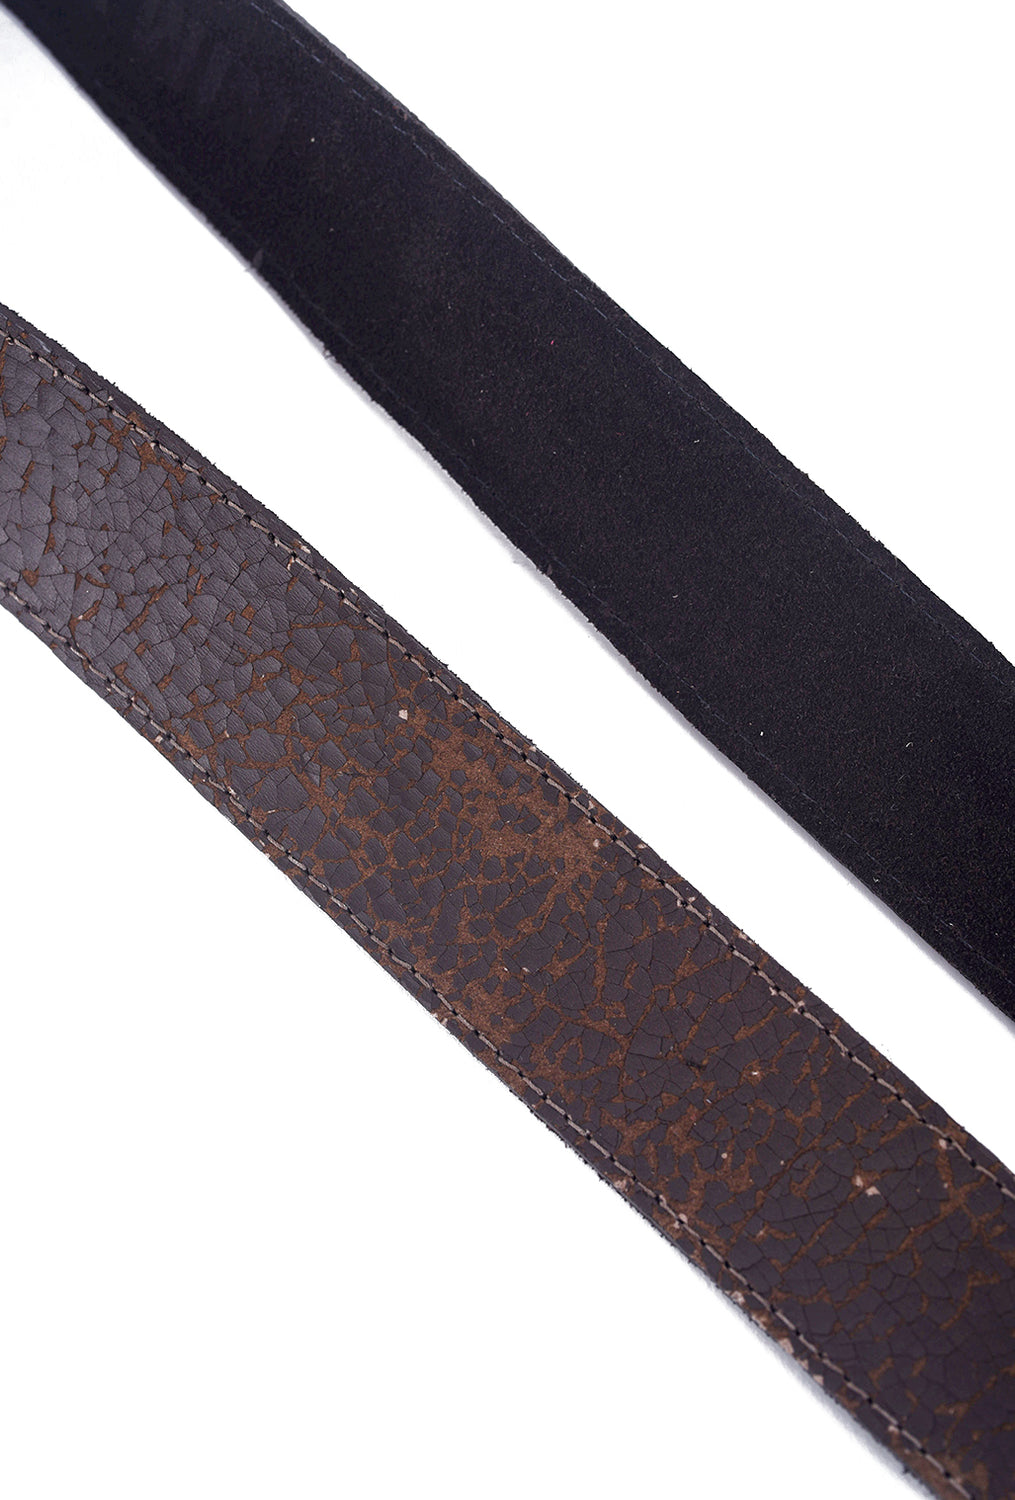 Kim White Heirloom Basic Belt, Chocolate Brown